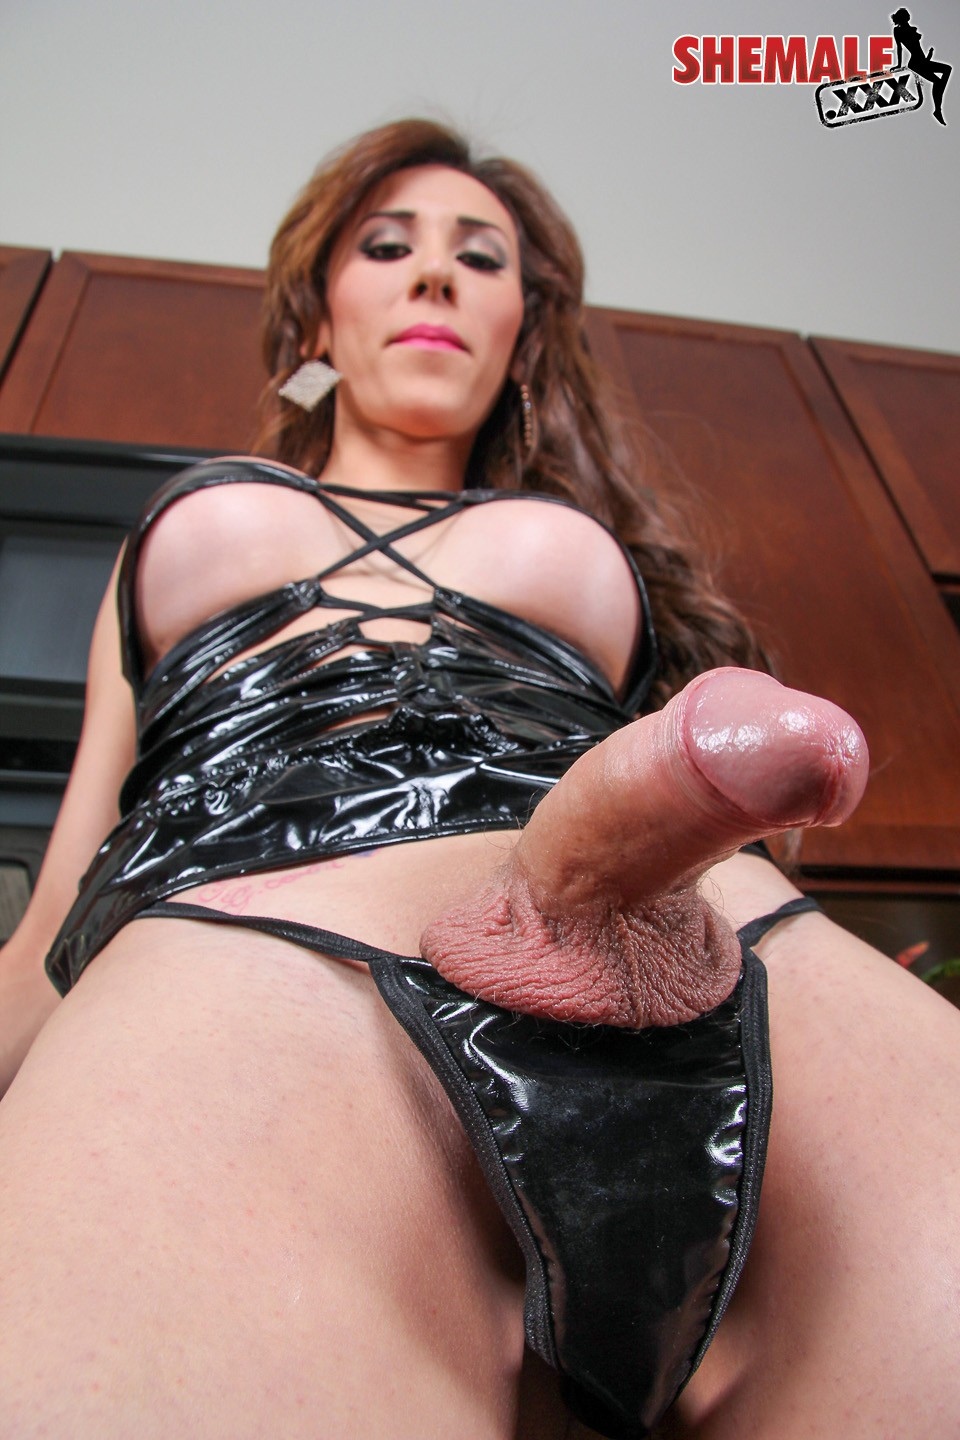 Free movie pee shemale tranny